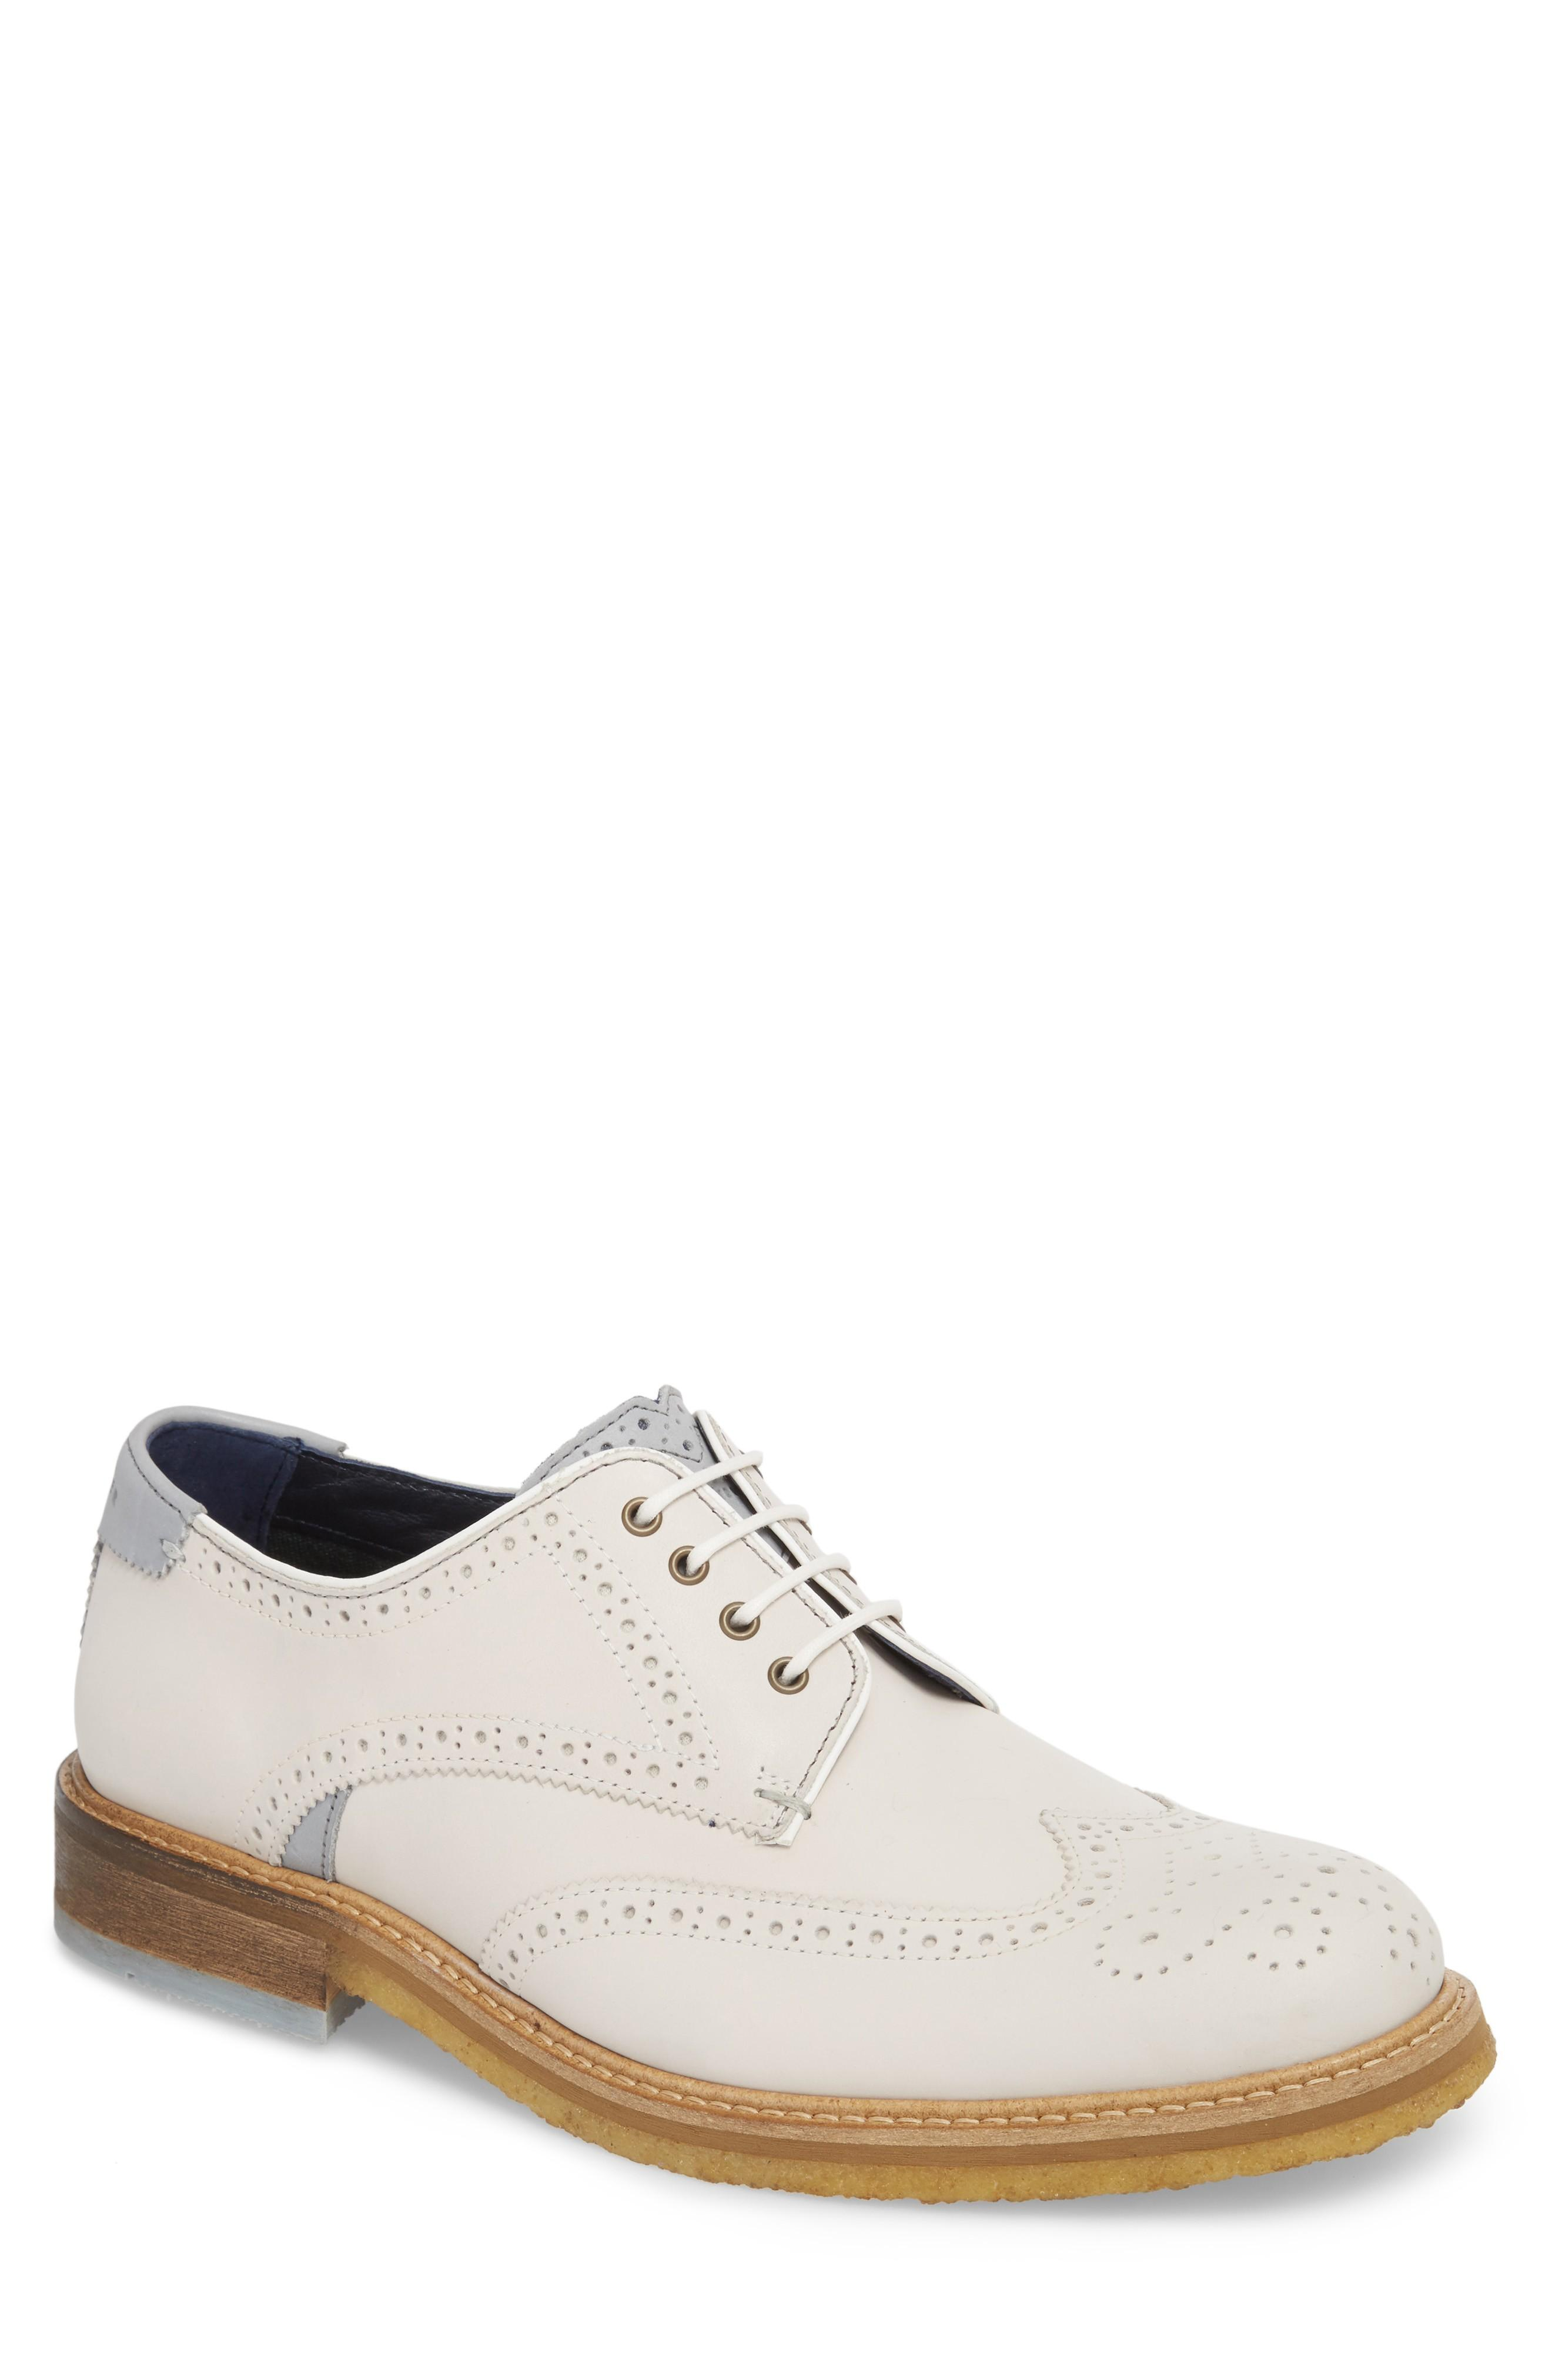 02244ed24bc053 Style Name  Ted Baker London Prycce Wingtip Derby (Men). Style Number   5243521. Available in stores.